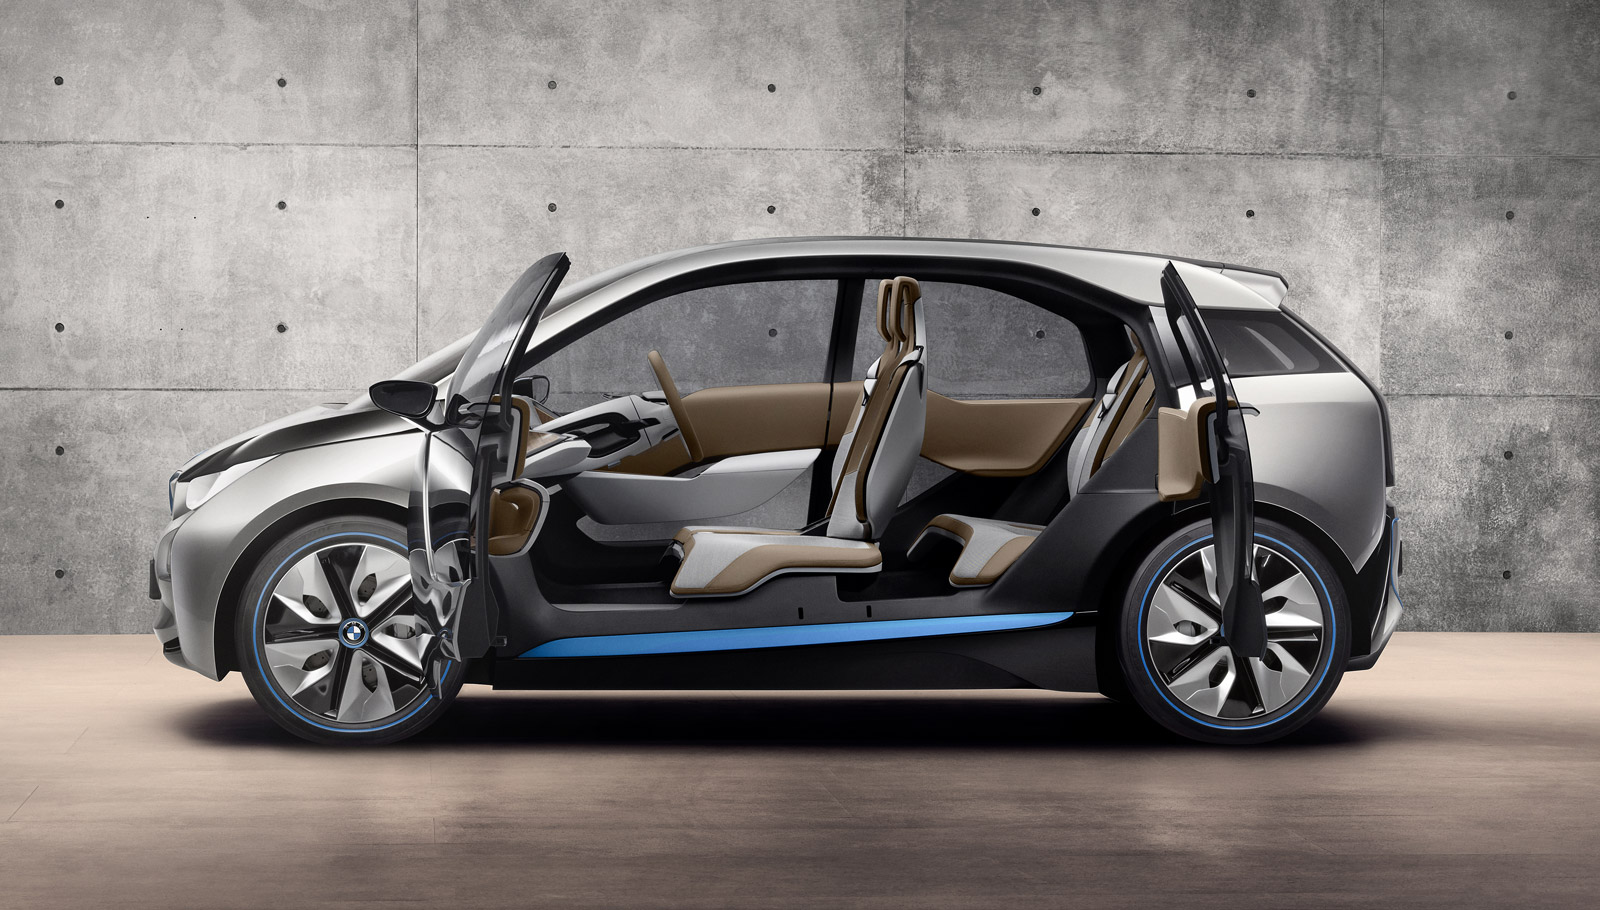 2014 bmw i3 electric car price how much will it cost. Black Bedroom Furniture Sets. Home Design Ideas